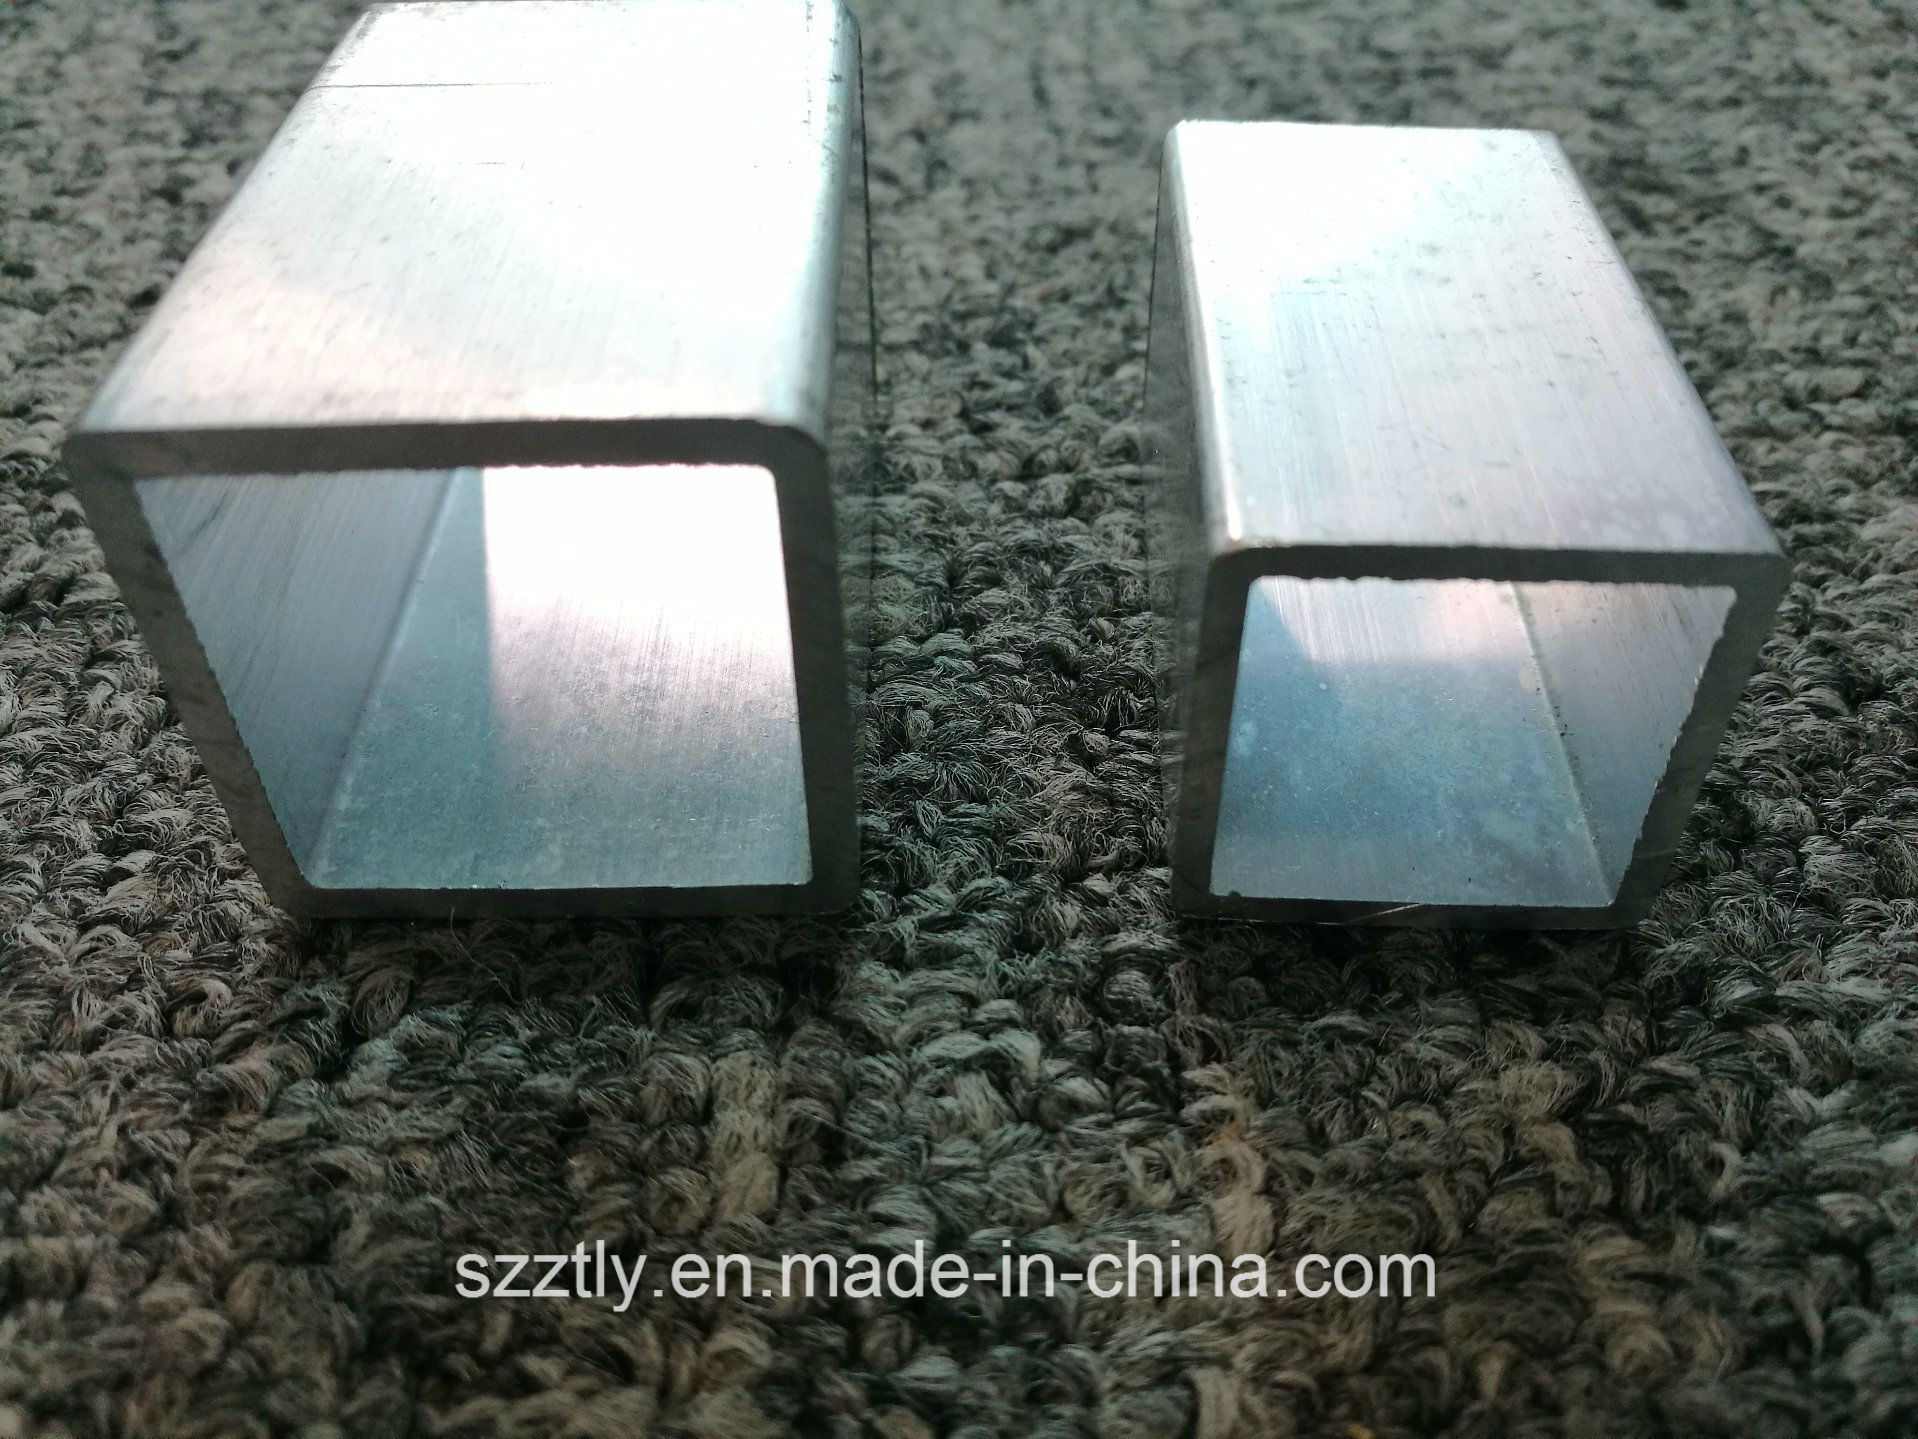 6000 Series Alloy Aluminum Extruded Square Tube 6X6 ~200X200mm